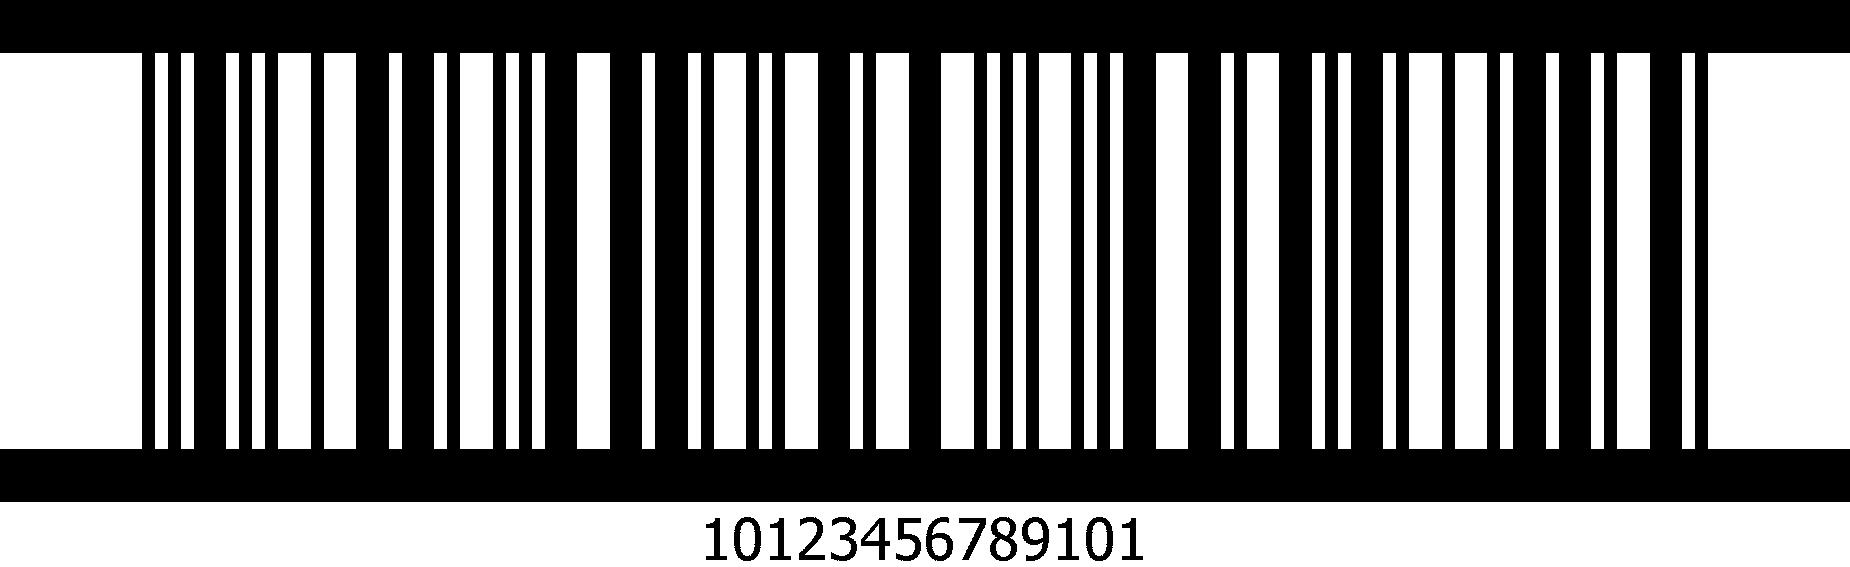 Sample Barcode Images.